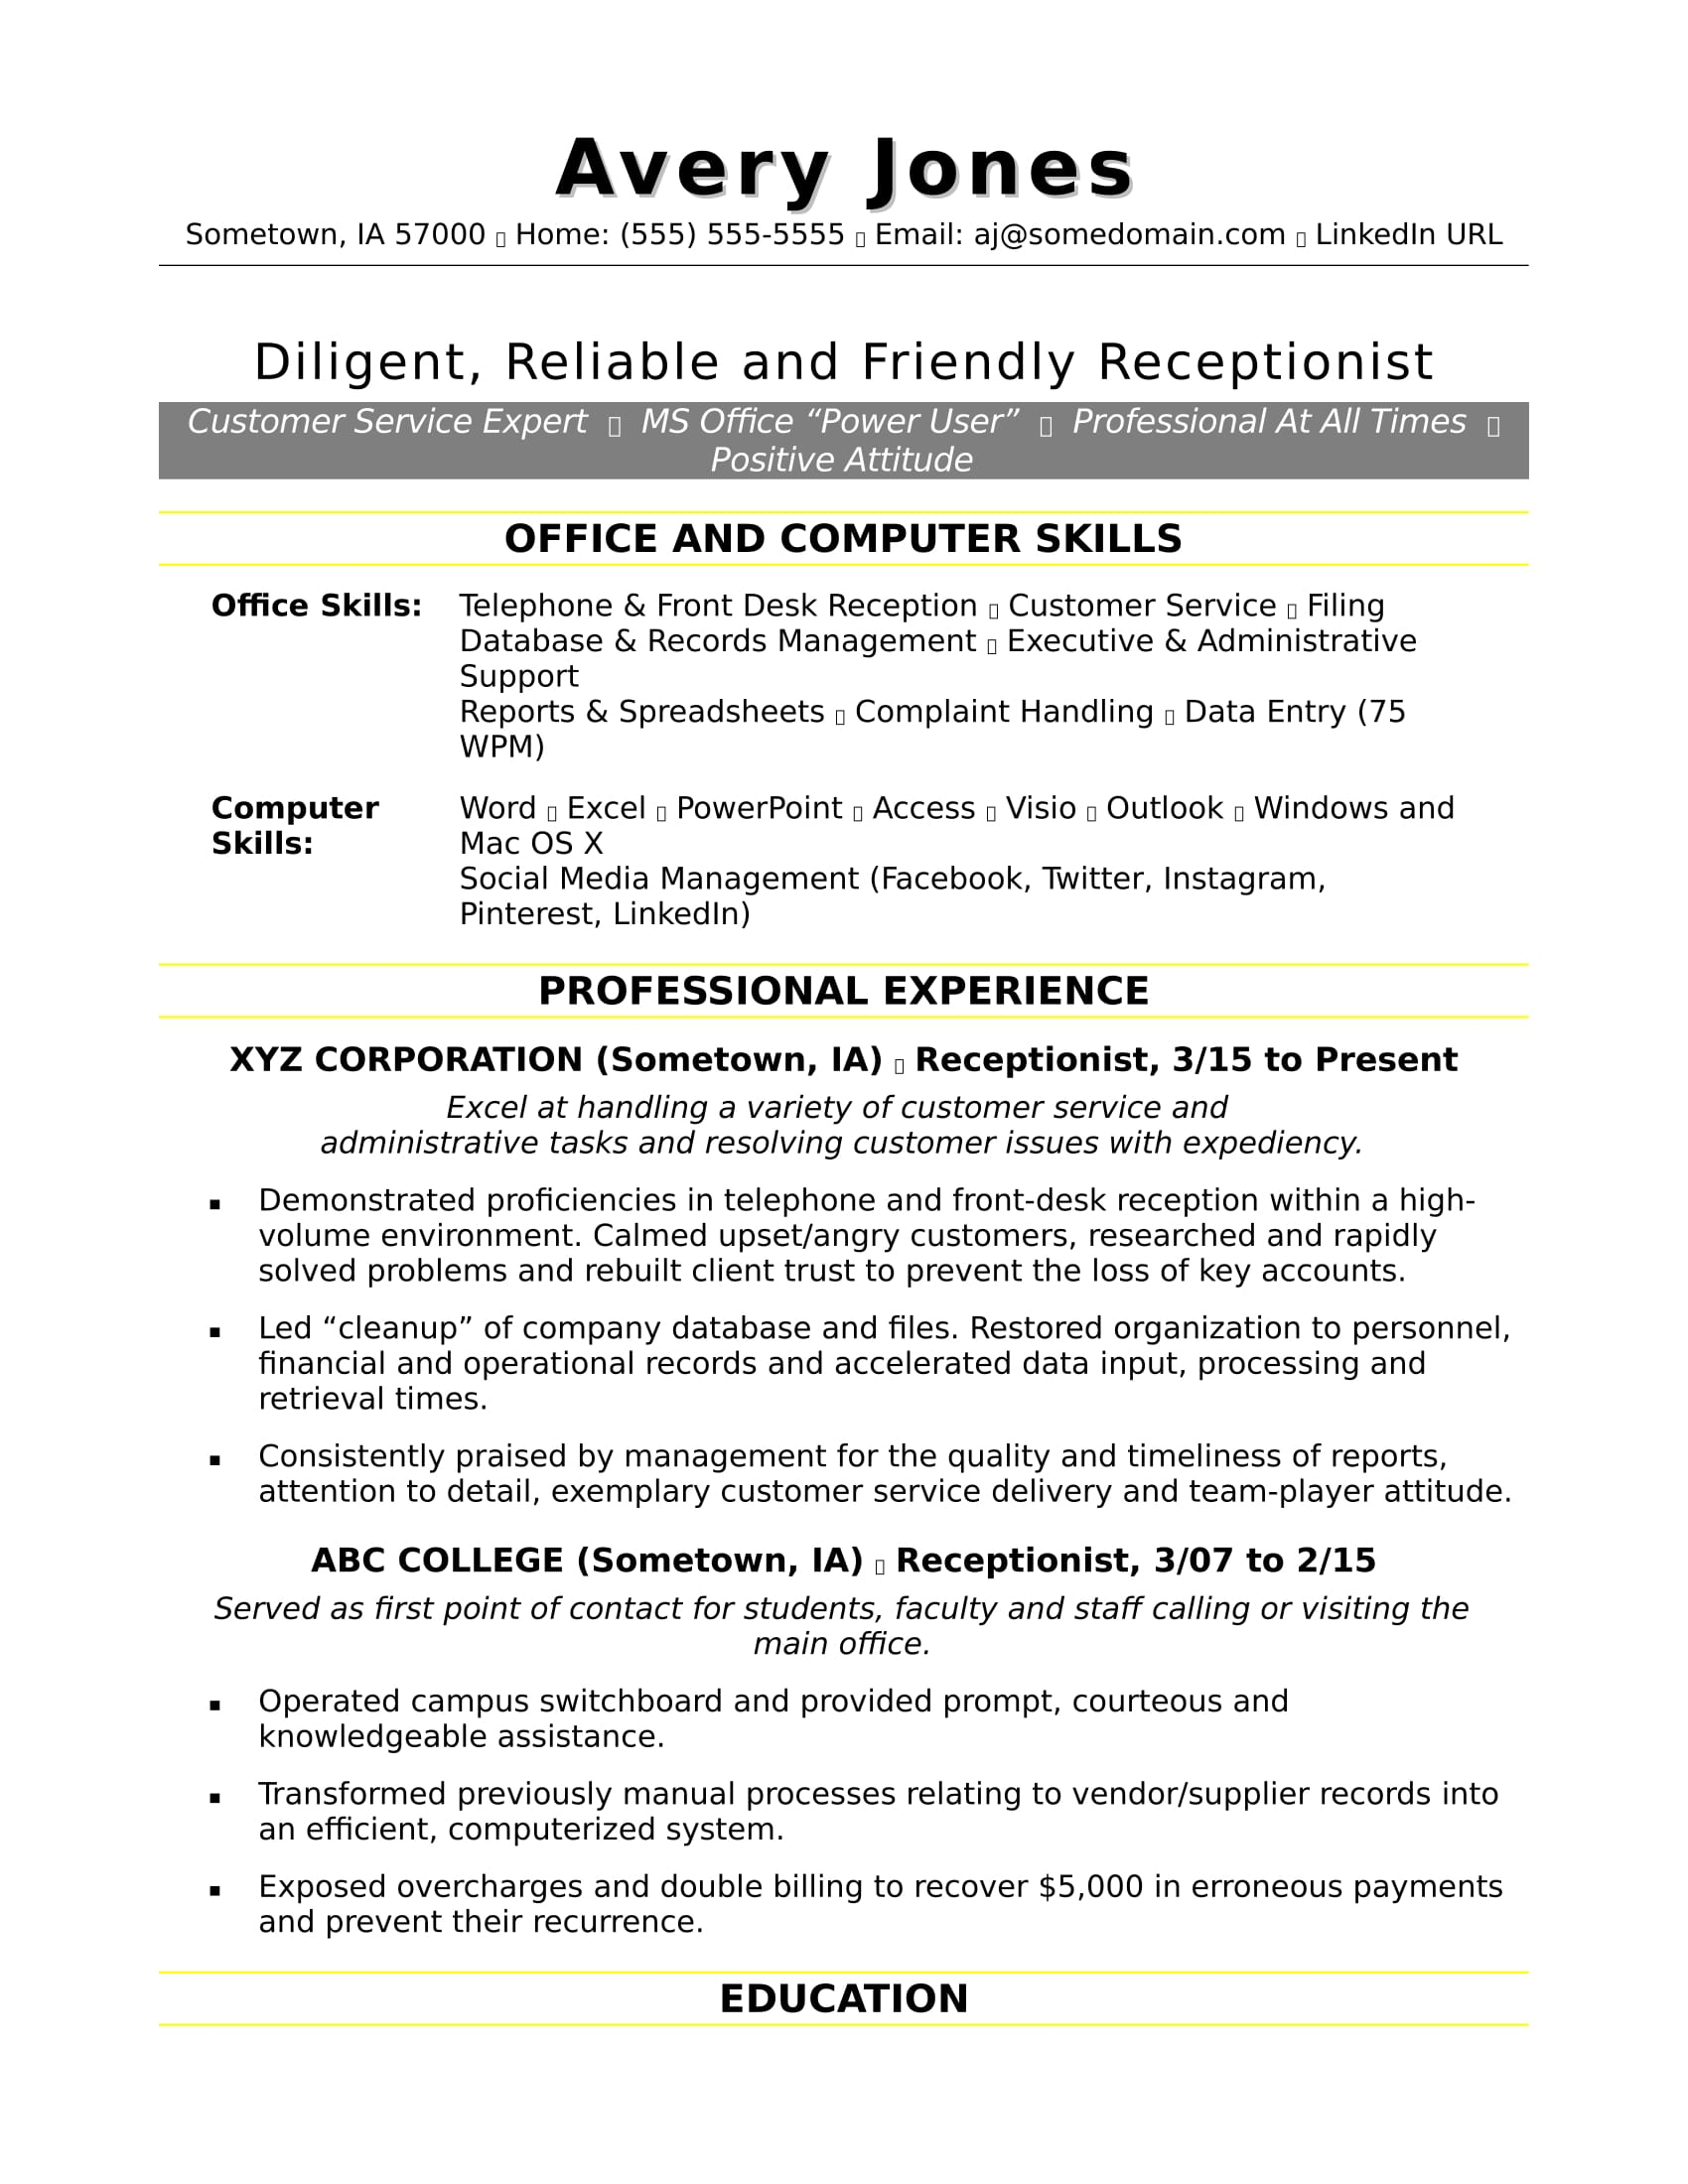 Sample Resume For A Receptionist  Resume Microsoft Office Skills